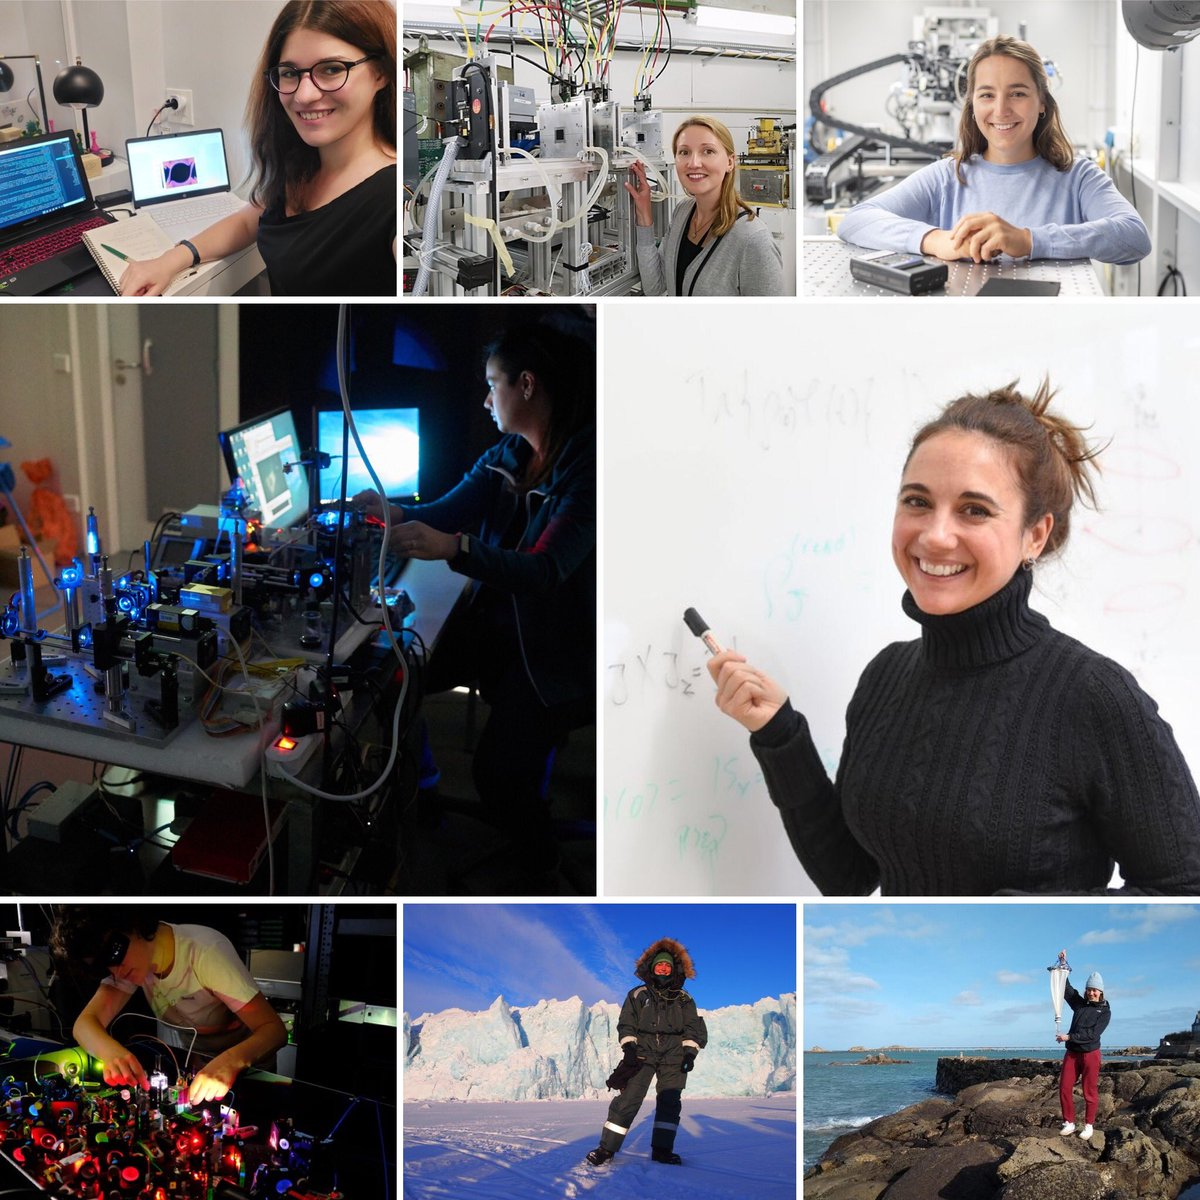 Last week I highlighted the 💯th #womaninphysics / #physikerin for my DPG initiative #physikerinderwoche 🥳 - An initiative to increase the visibility of #womeninphysics in 🇩🇪 - Feel free to participate! Here are all current profiles @physikerinnen or https://t.co/VapwEKajFx https://t.co/kgSyNjFcKL